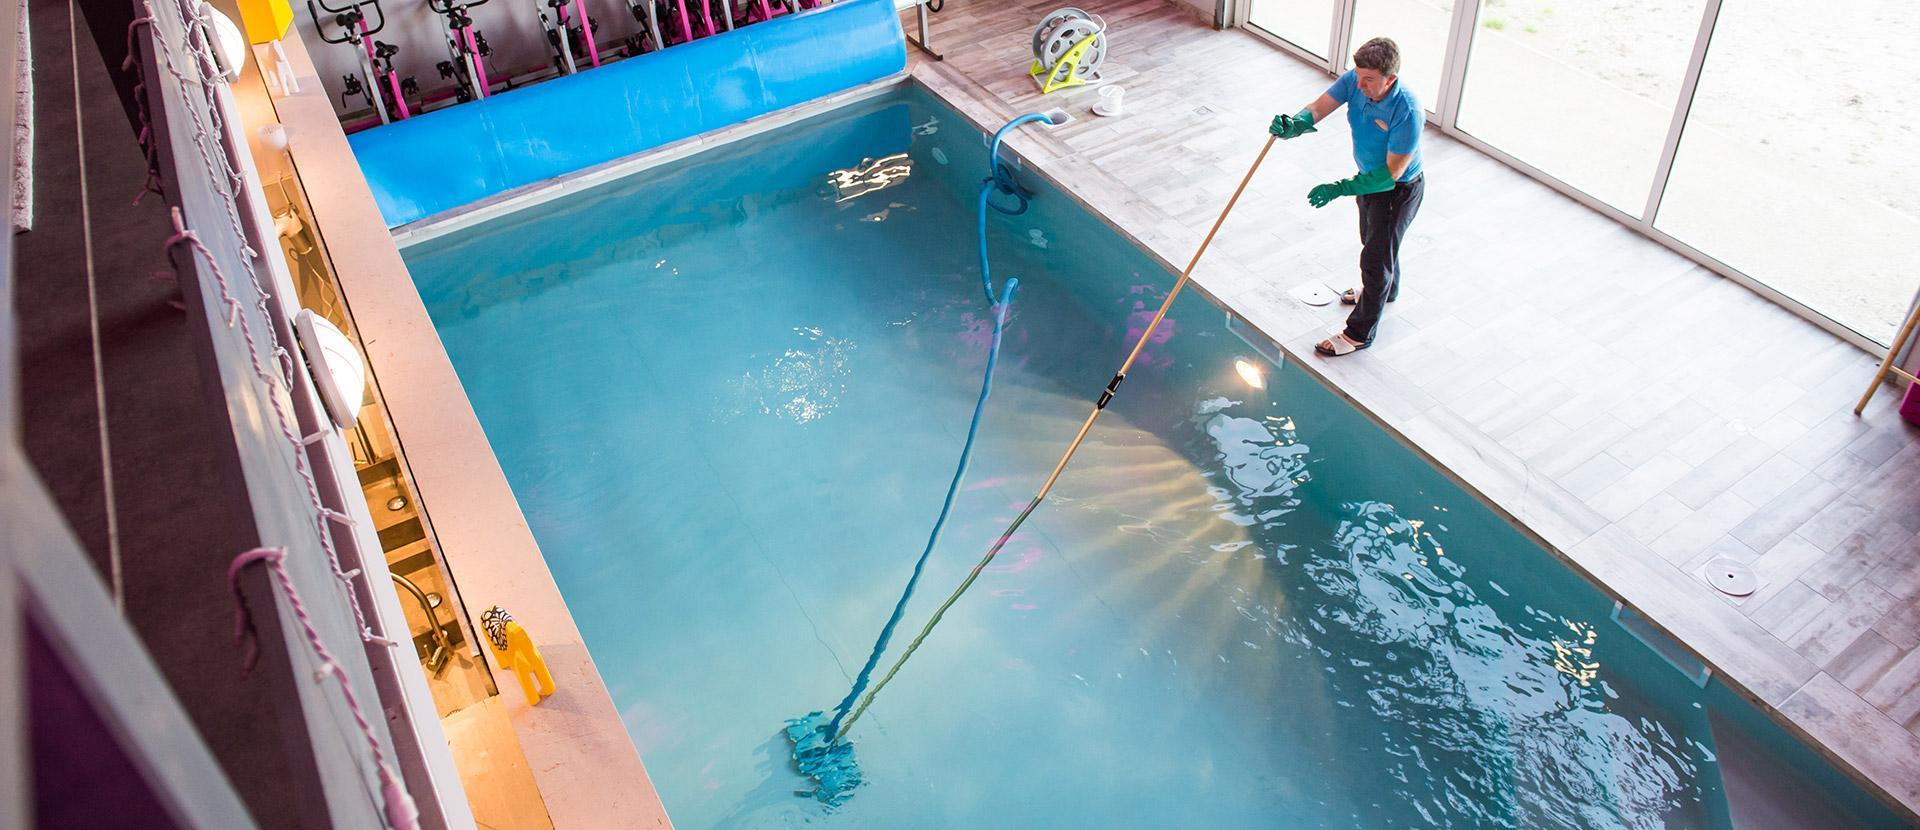 professional swimming pools repair London